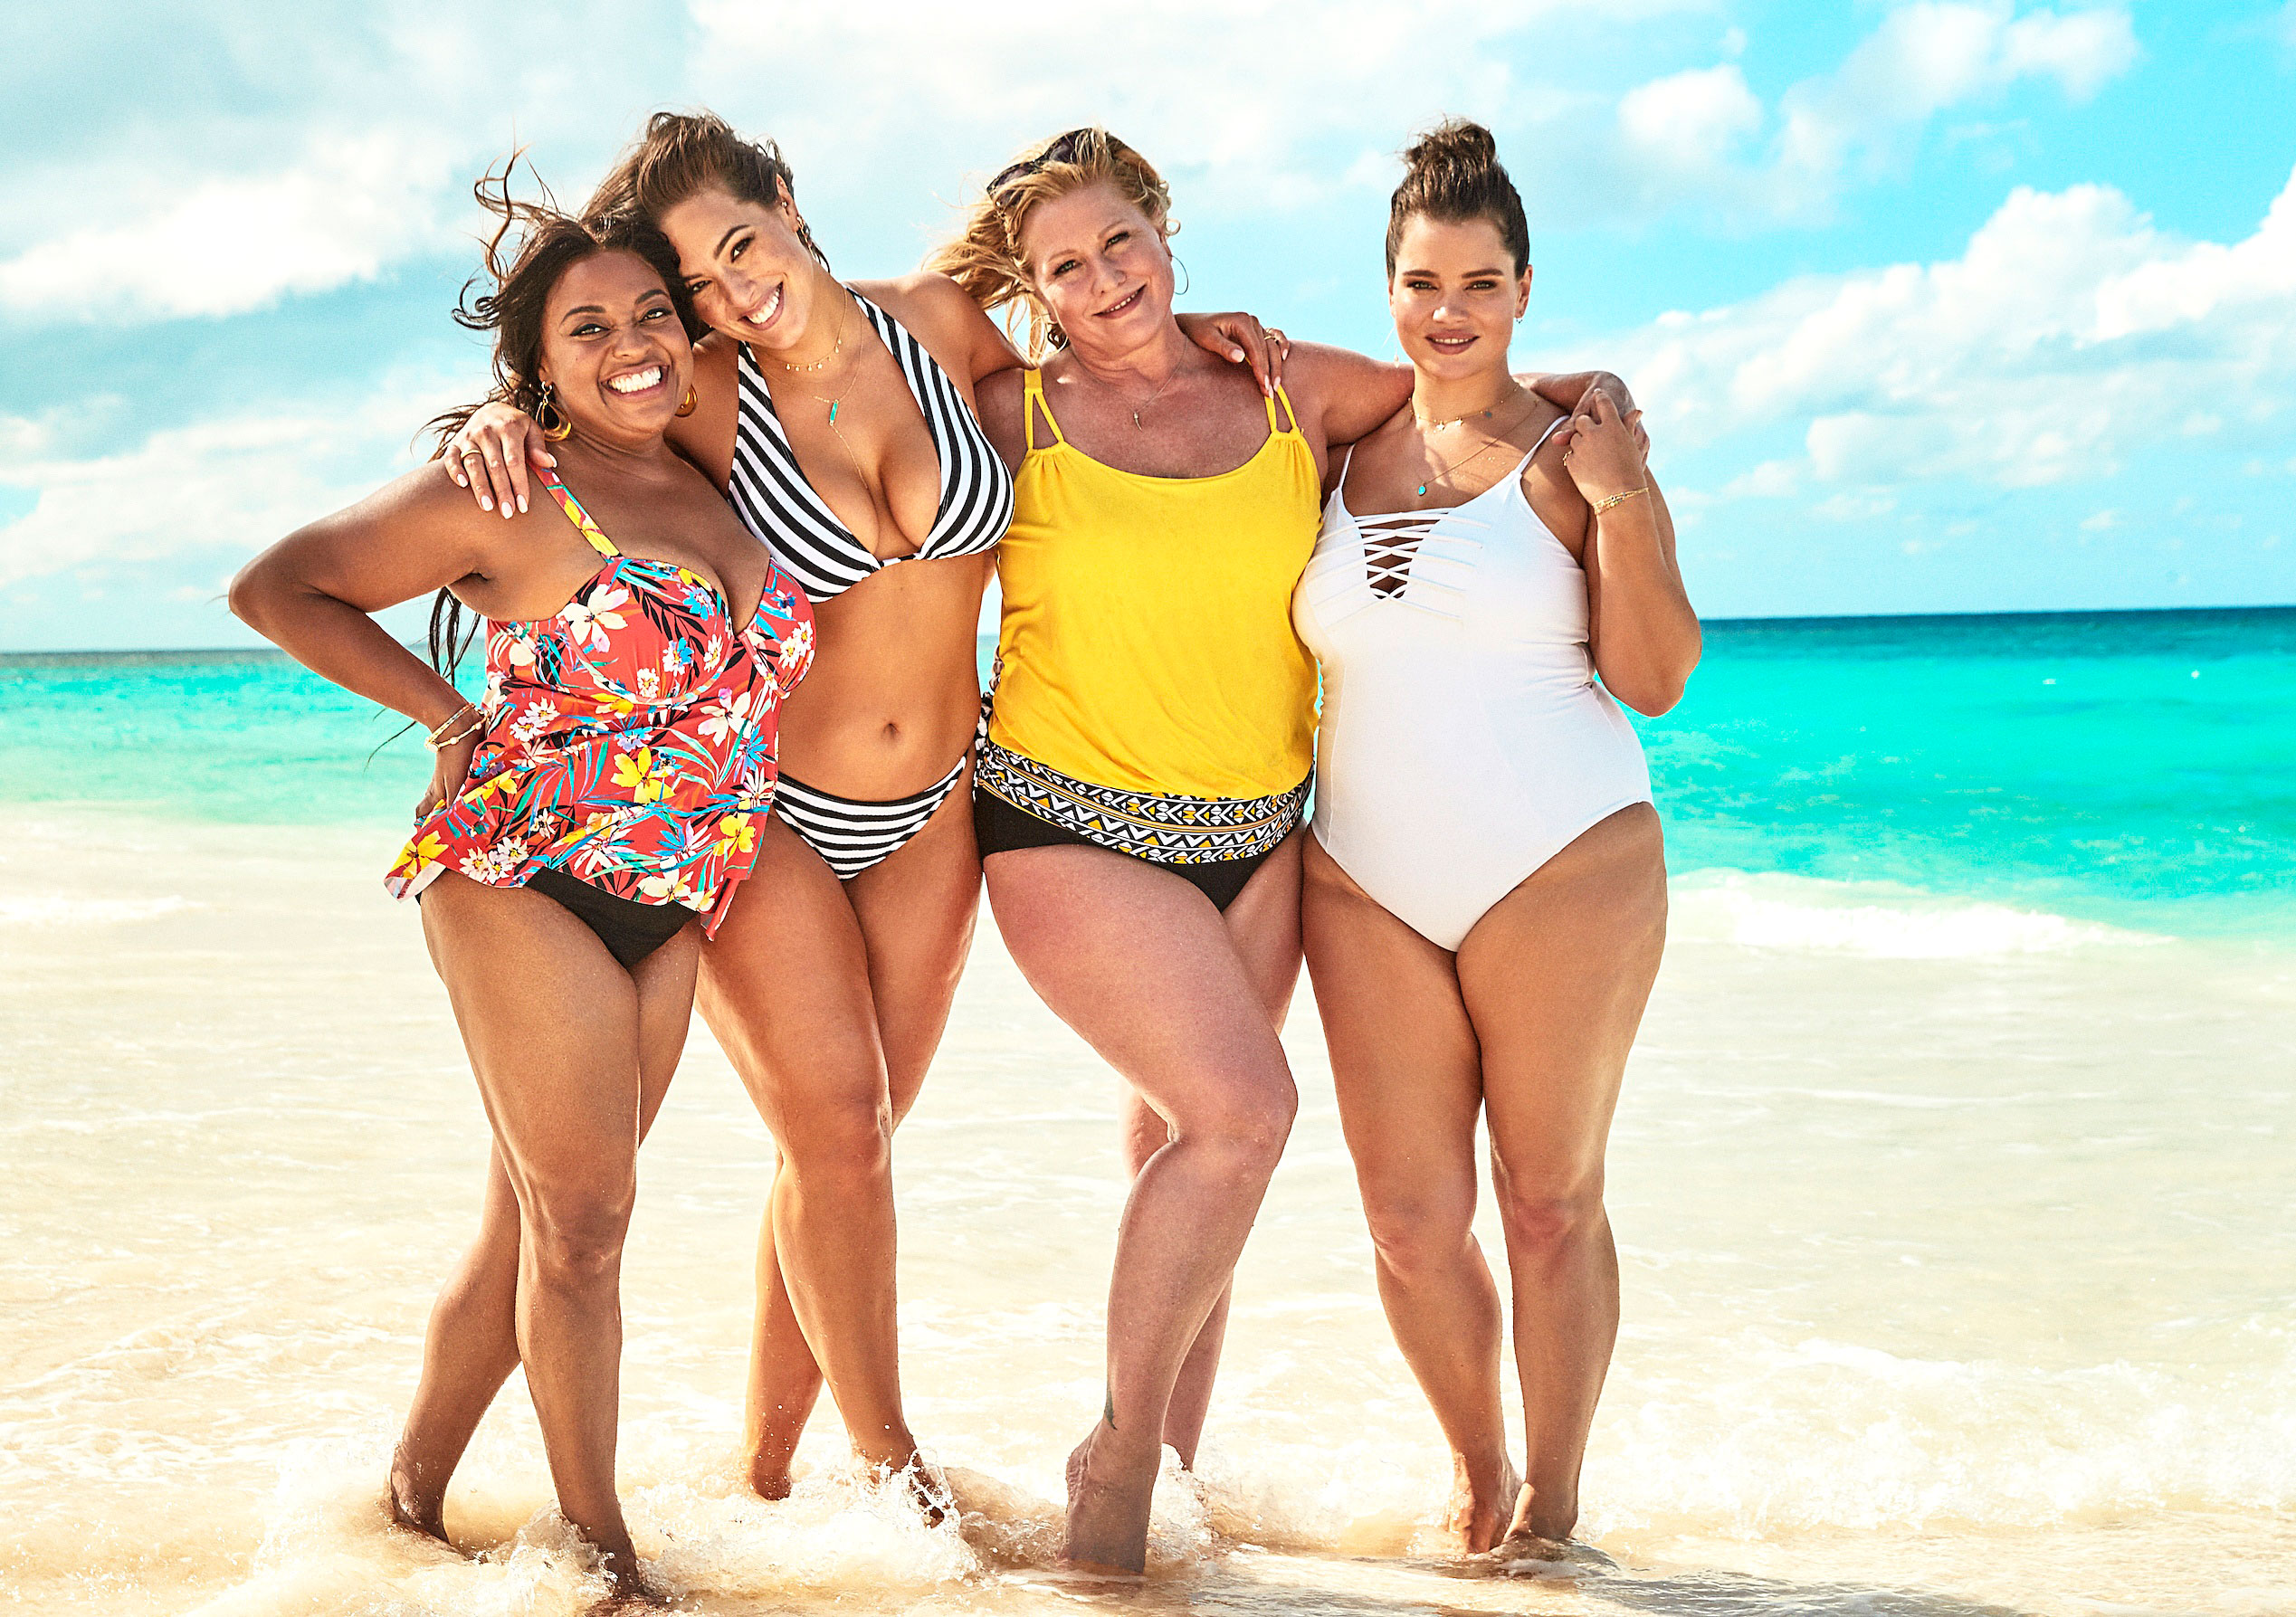 Ashley Graham Sherri Shepherd Lead Body-Positive Swim Campaign - Sherri Shepherd, Ashley Graham, Emme and Tara Lynn (from left) model styles from Swimsuits For All.